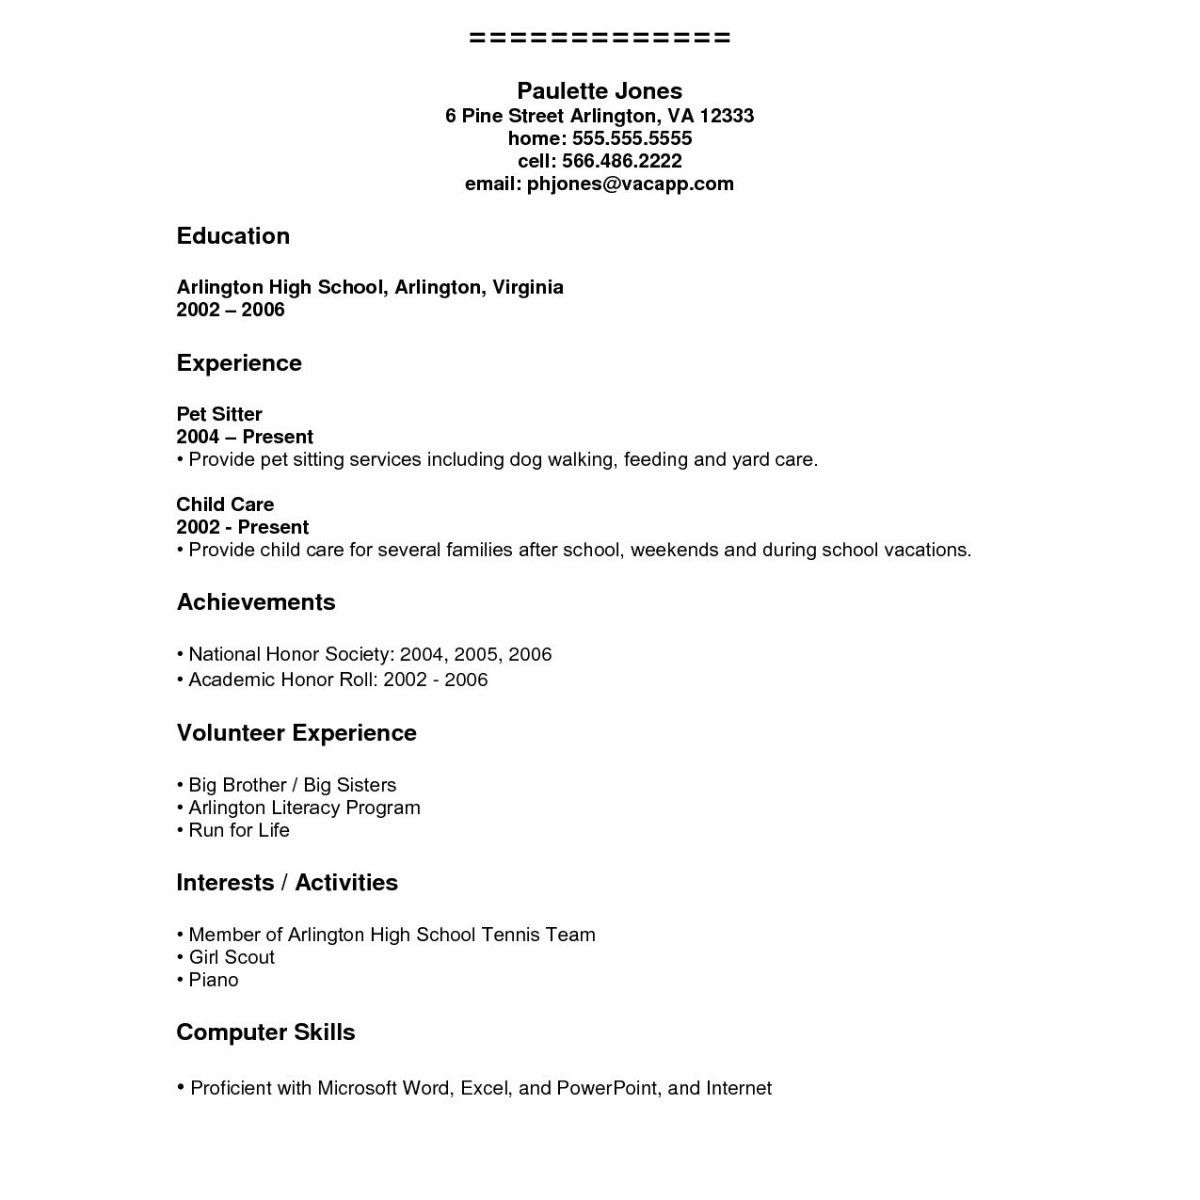 71 Cool Images Of Curriculum Vitae Examples For Highschool Students